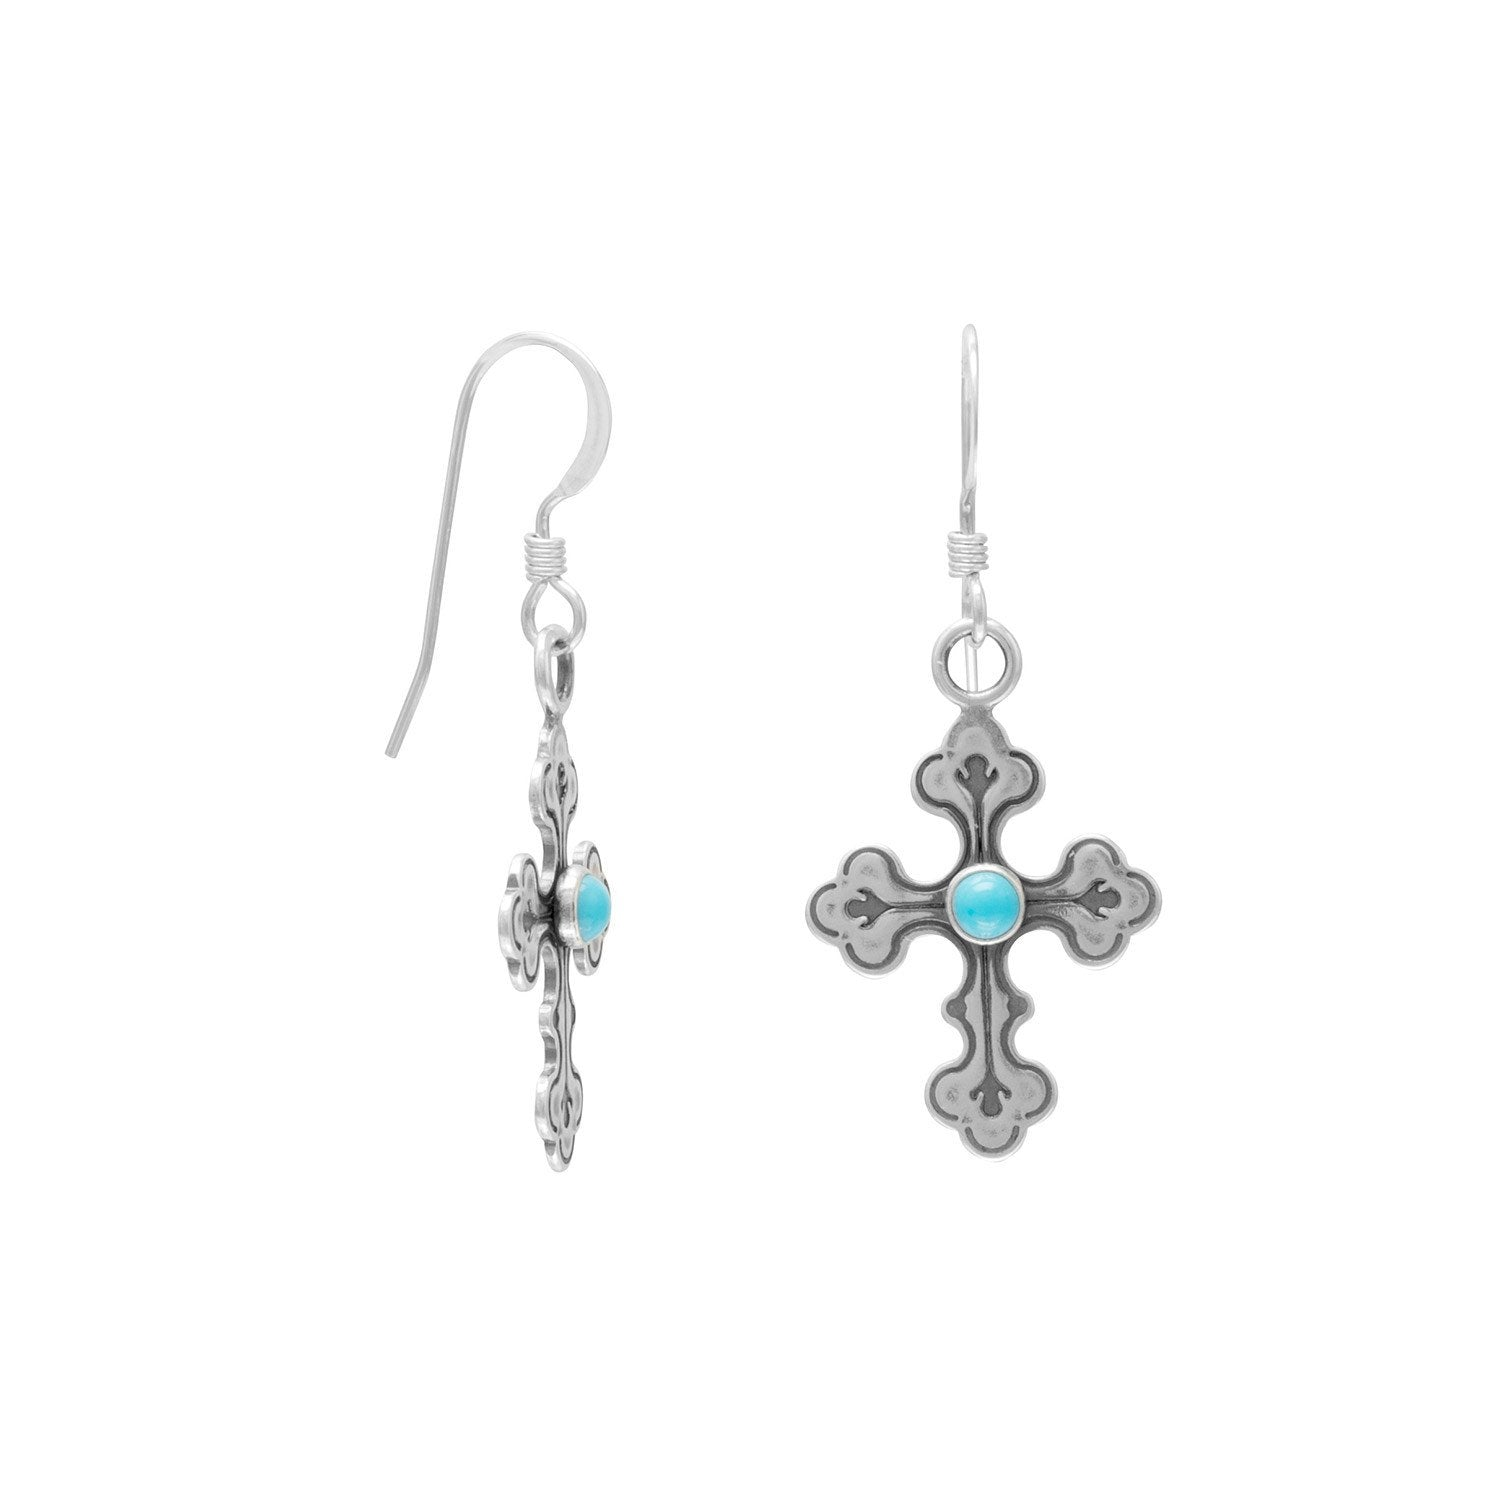 Oxidized Cross Earrings with Turquoise Center - Rocky Mt. Outlet Inc - Shop & Save 24/7